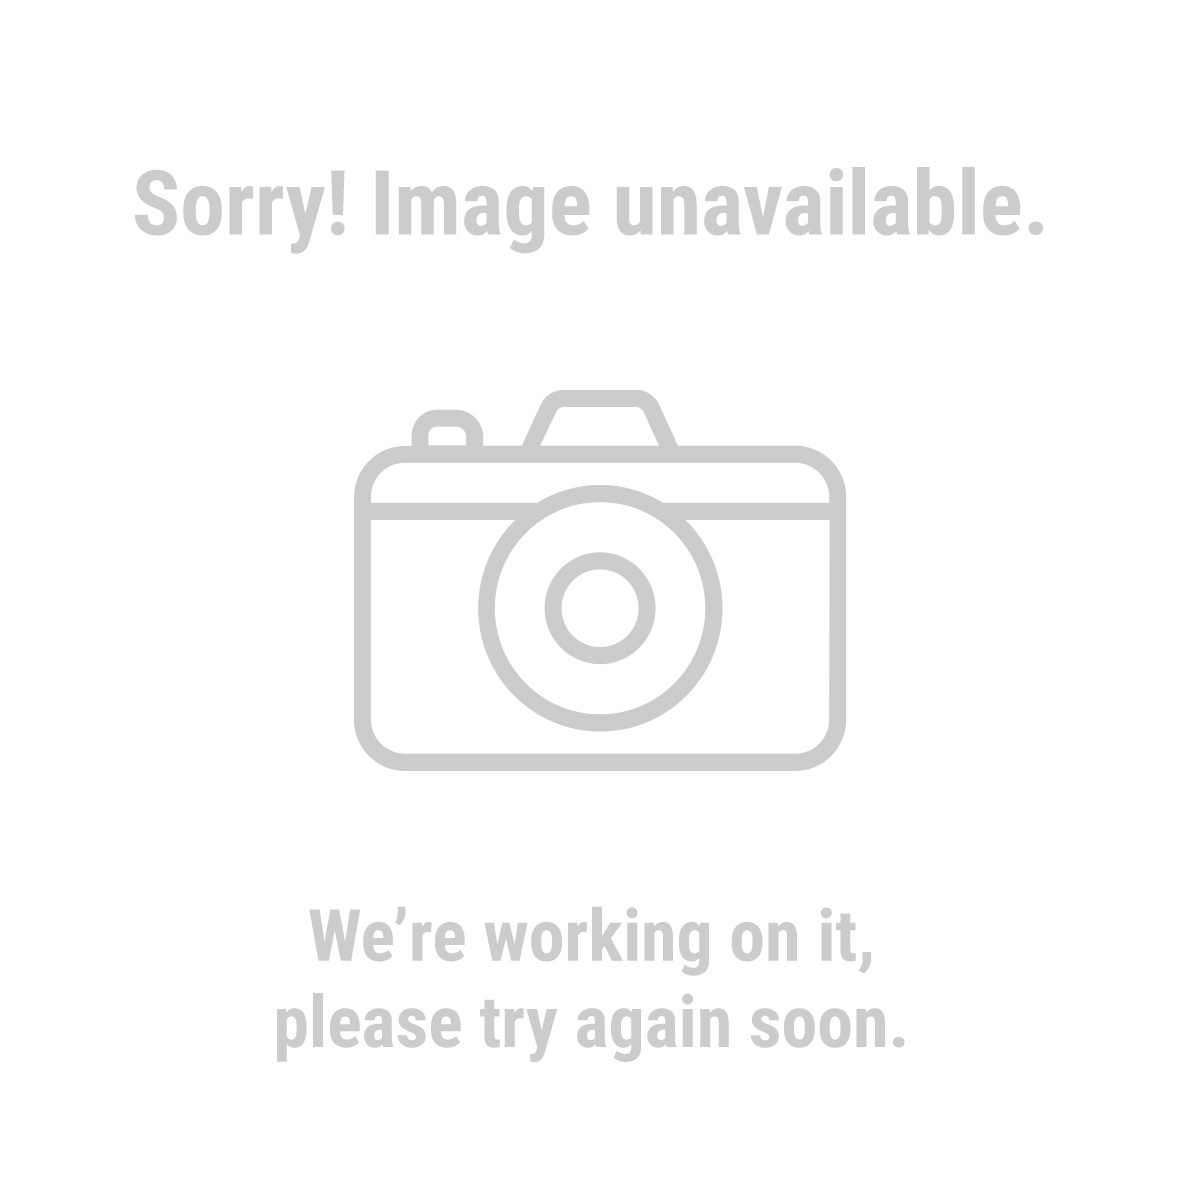 Krause & Becker 62676 2 in. Professional Paint Brush